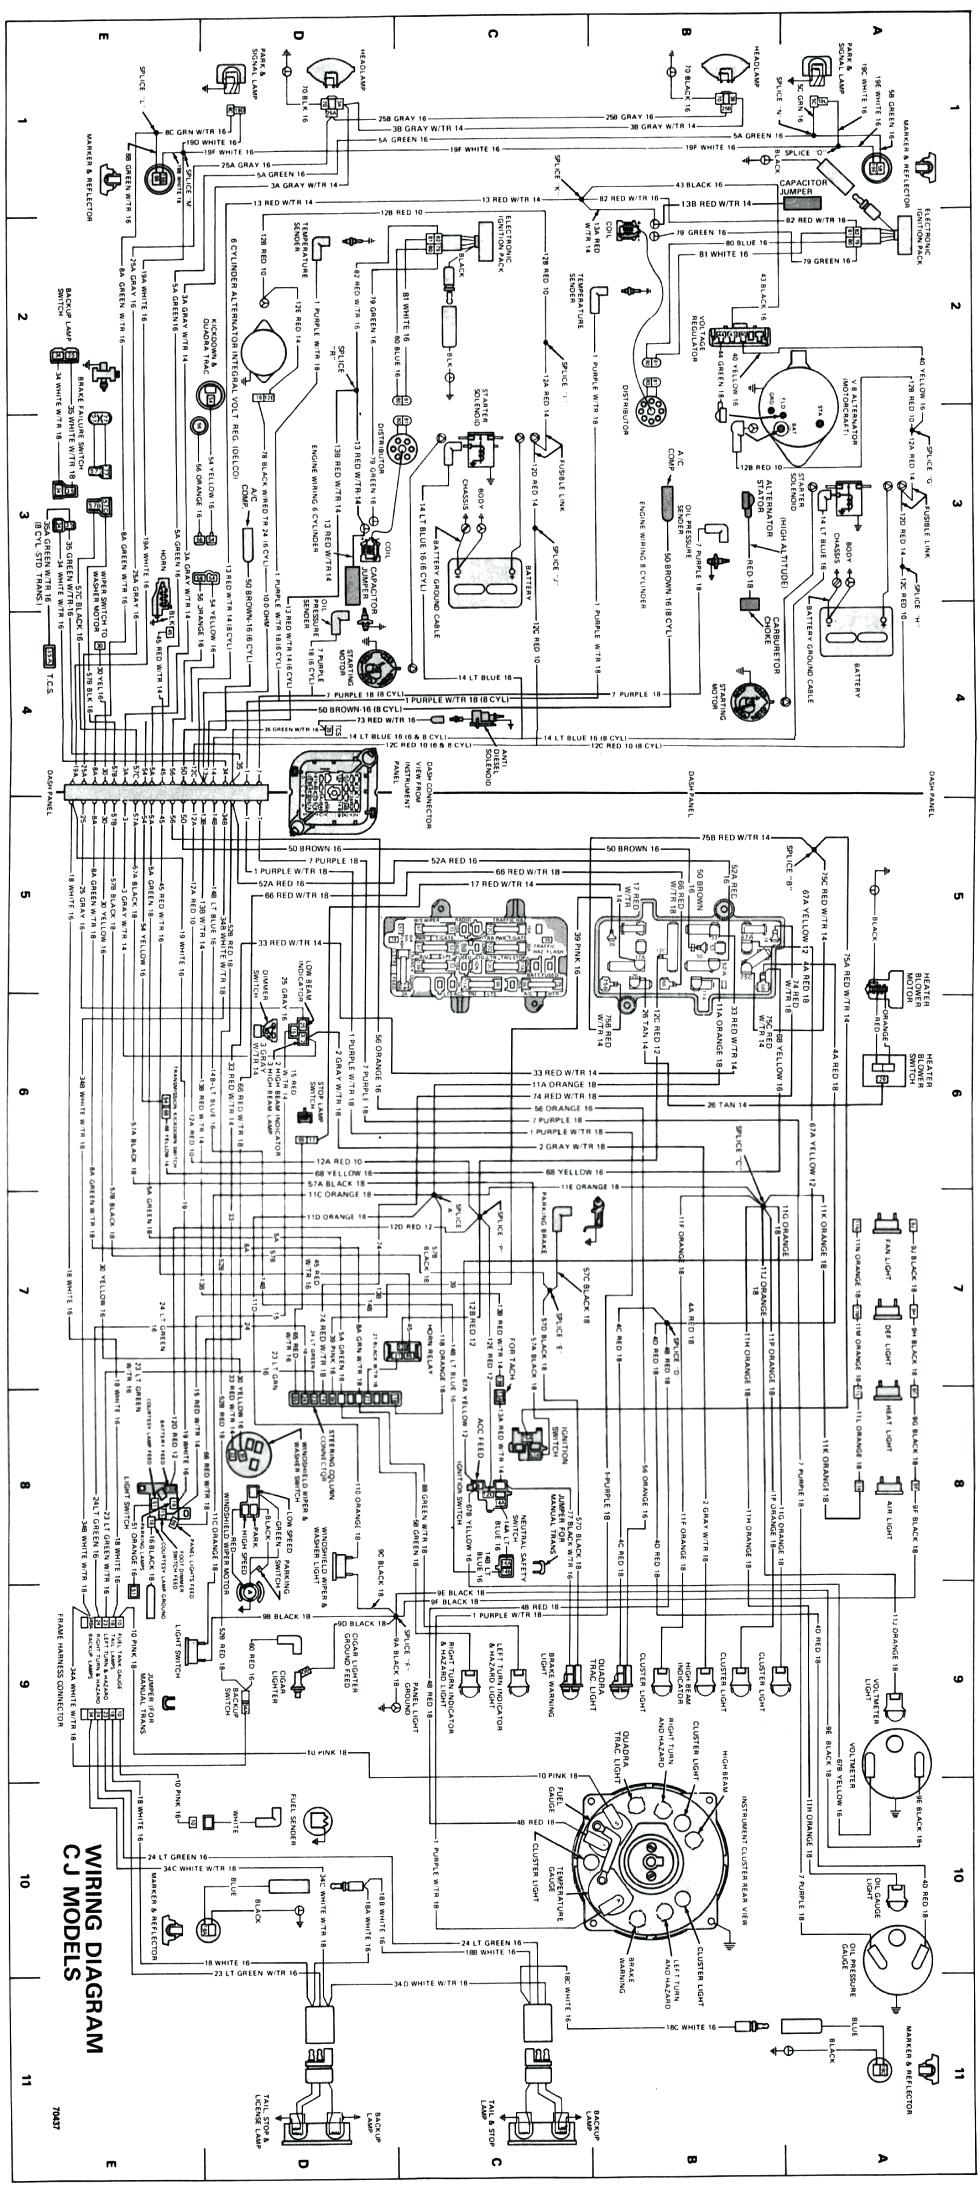 Diagram 71 72 Mgb Wiring Diagram Full Version Hd Quality Wiring Diagram Diagramsmaum Caditwergi It